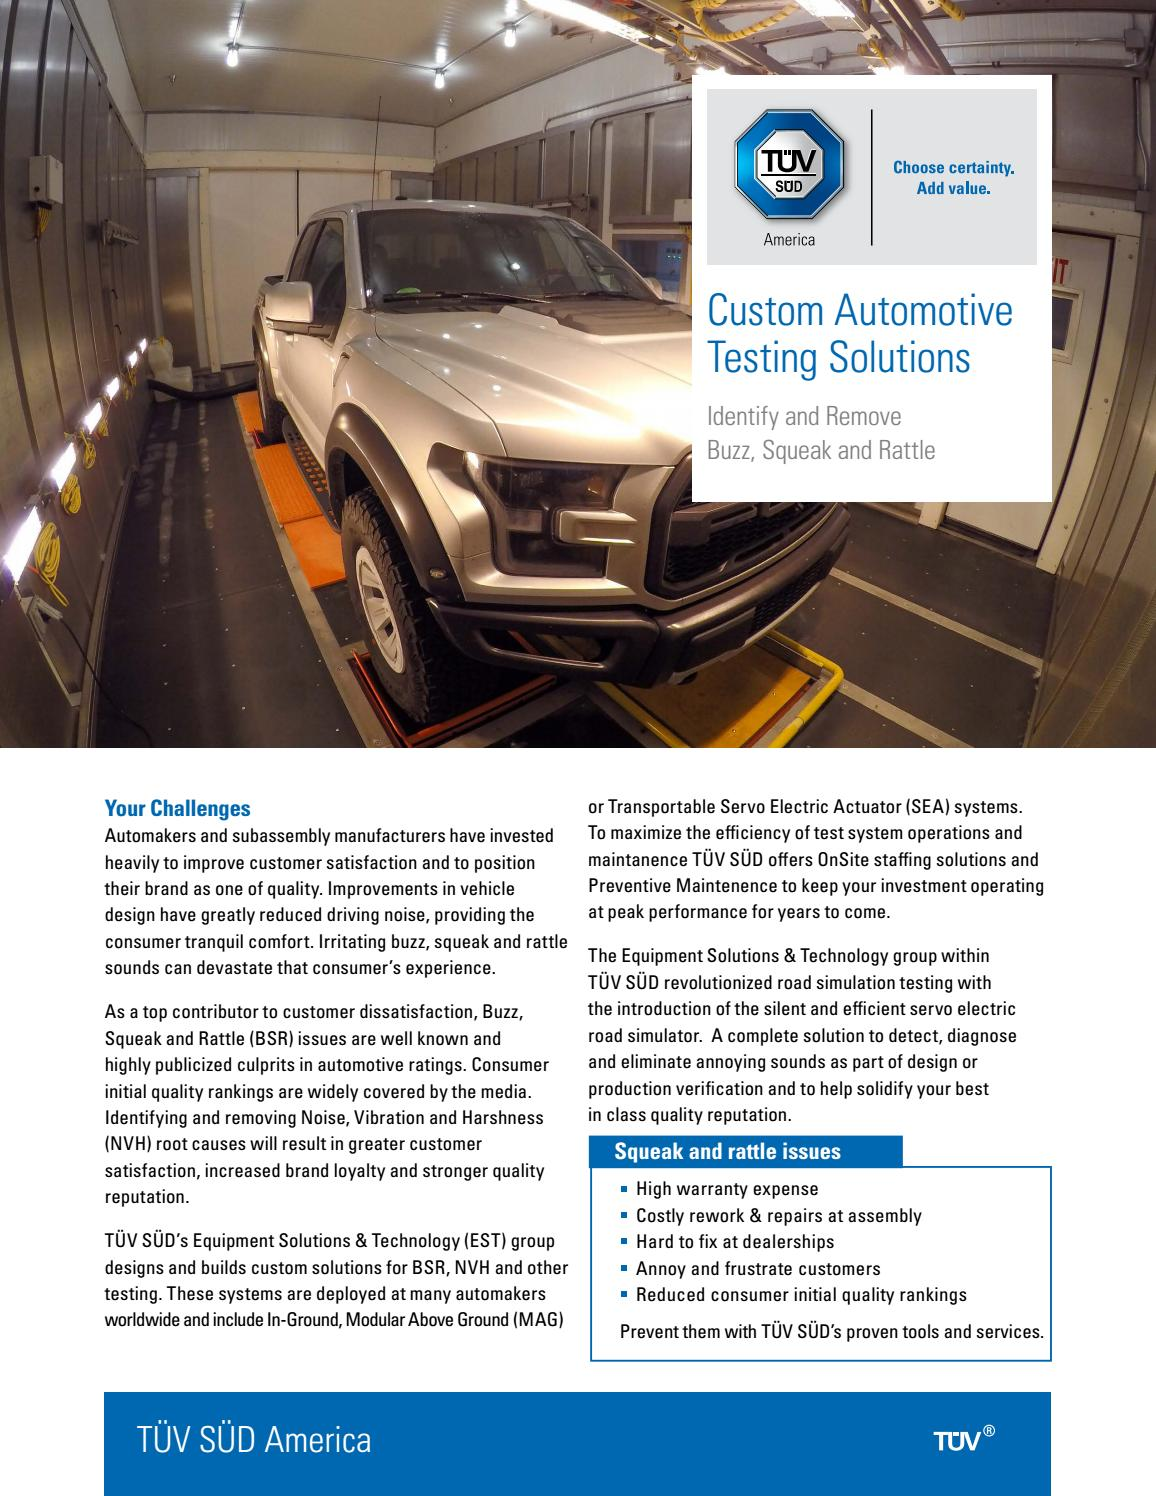 Custom Automotive Testing Solutions: Identify and Remove